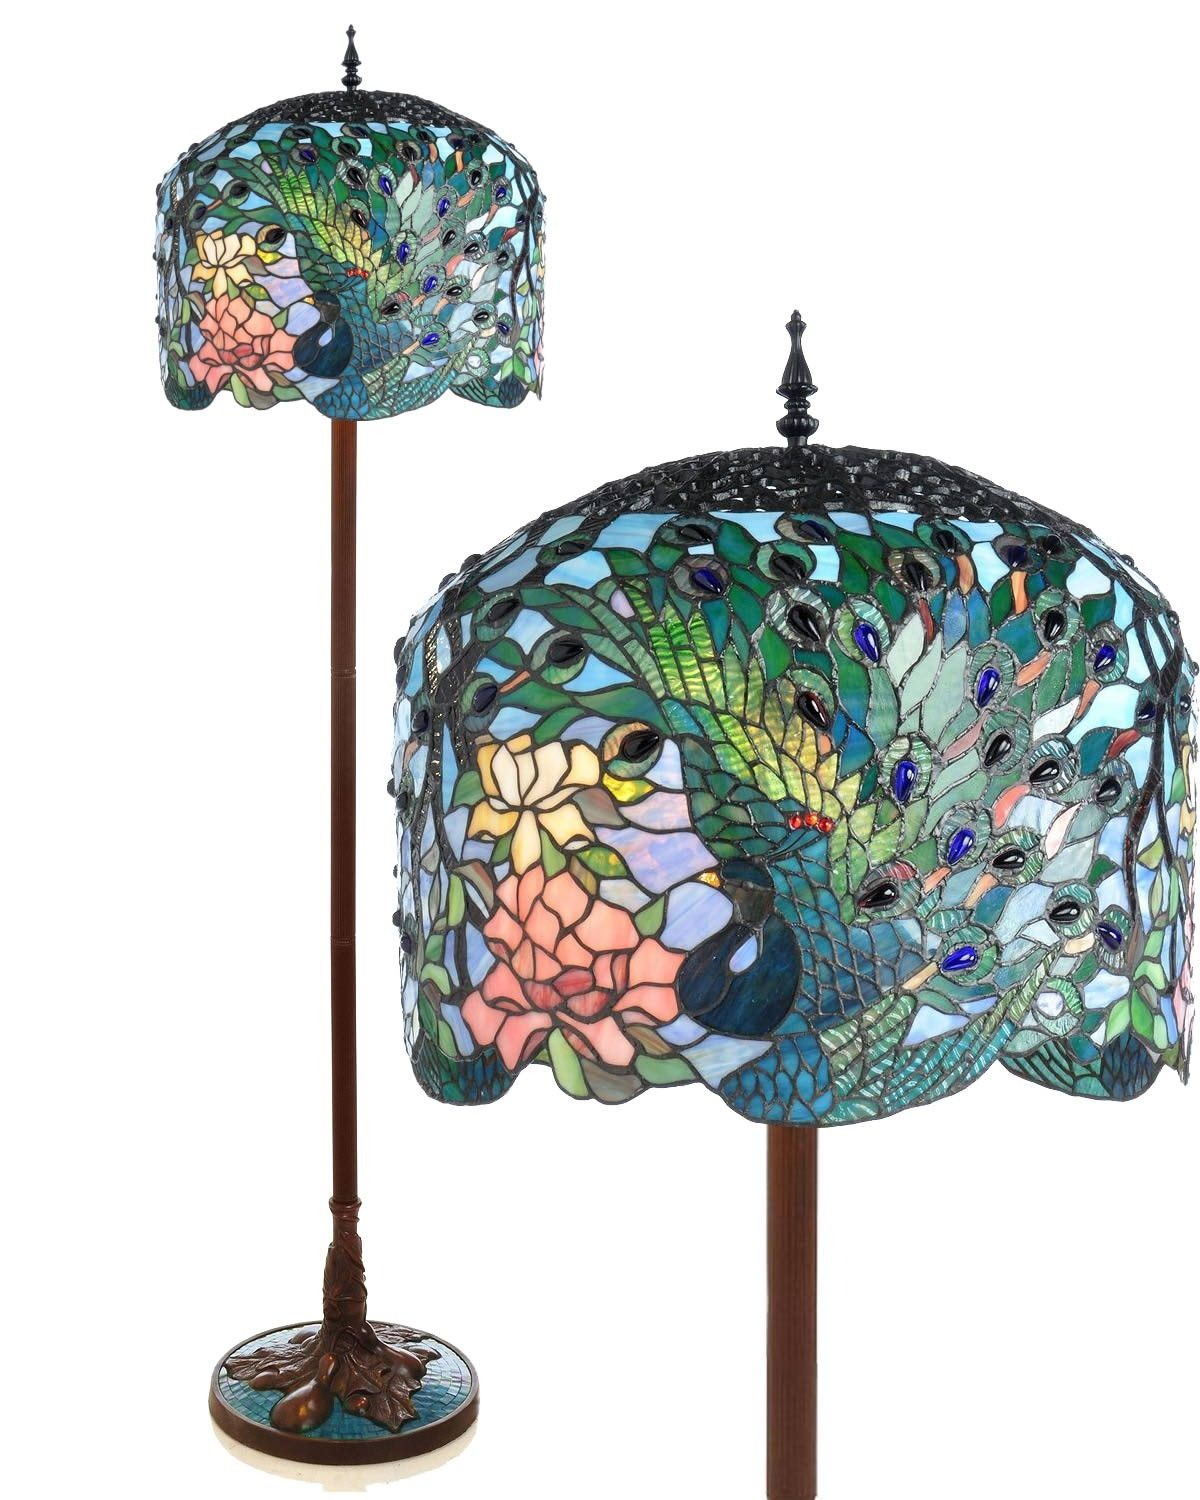 Antique tiffany style floor lamps httpafshowcaseprop antique tiffany style floor lamps aloadofball Image collections